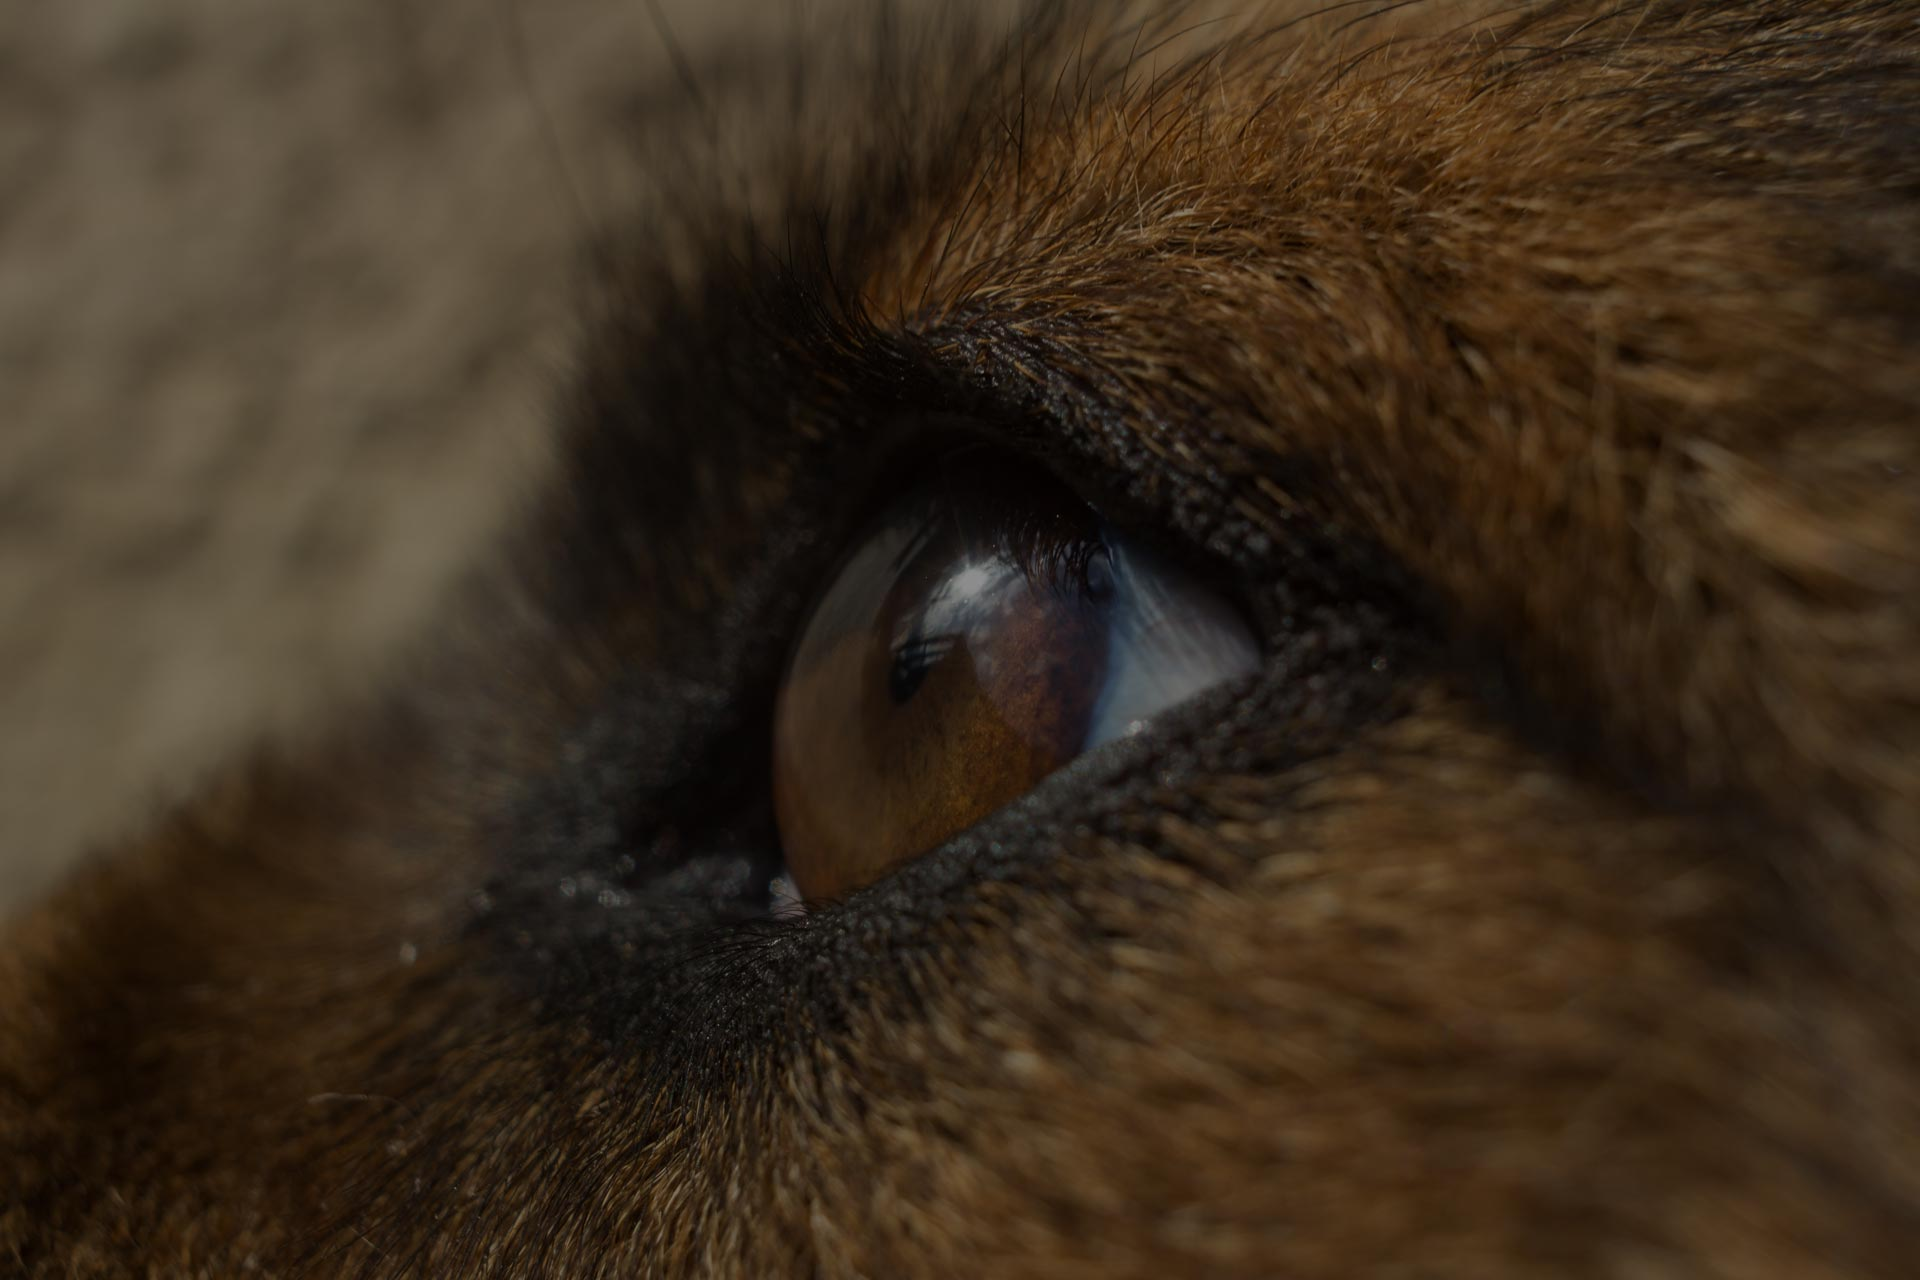 Beautifull Dogs eye